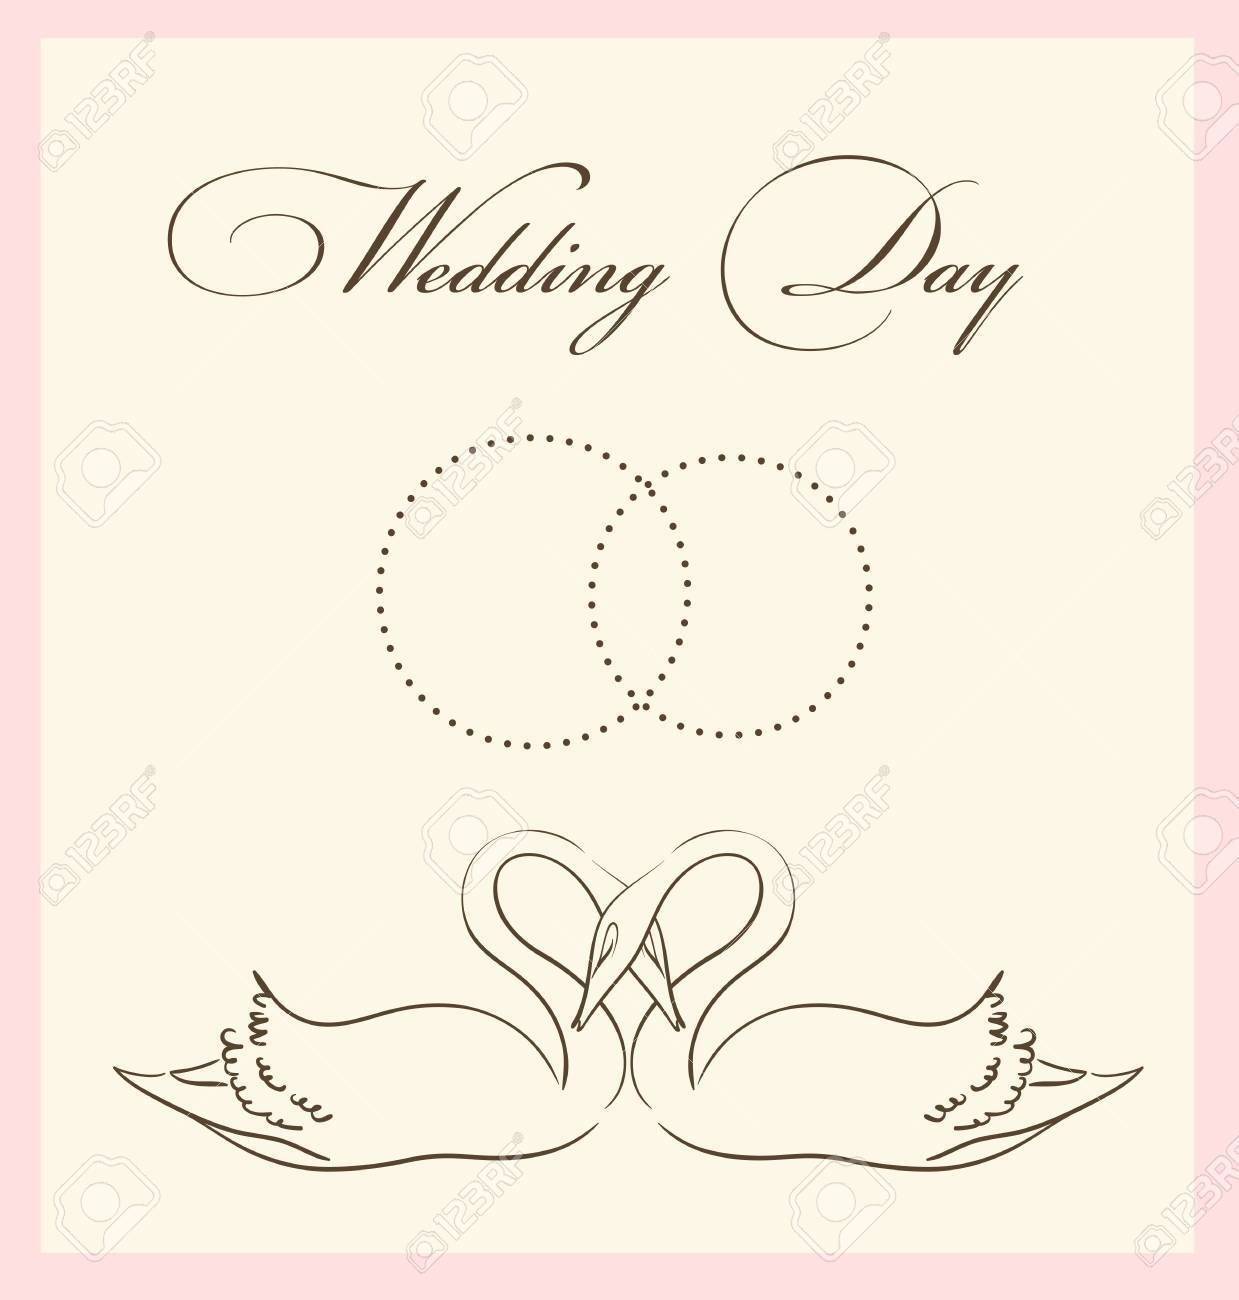 Images of Wedding Card Template - Weddings Pro